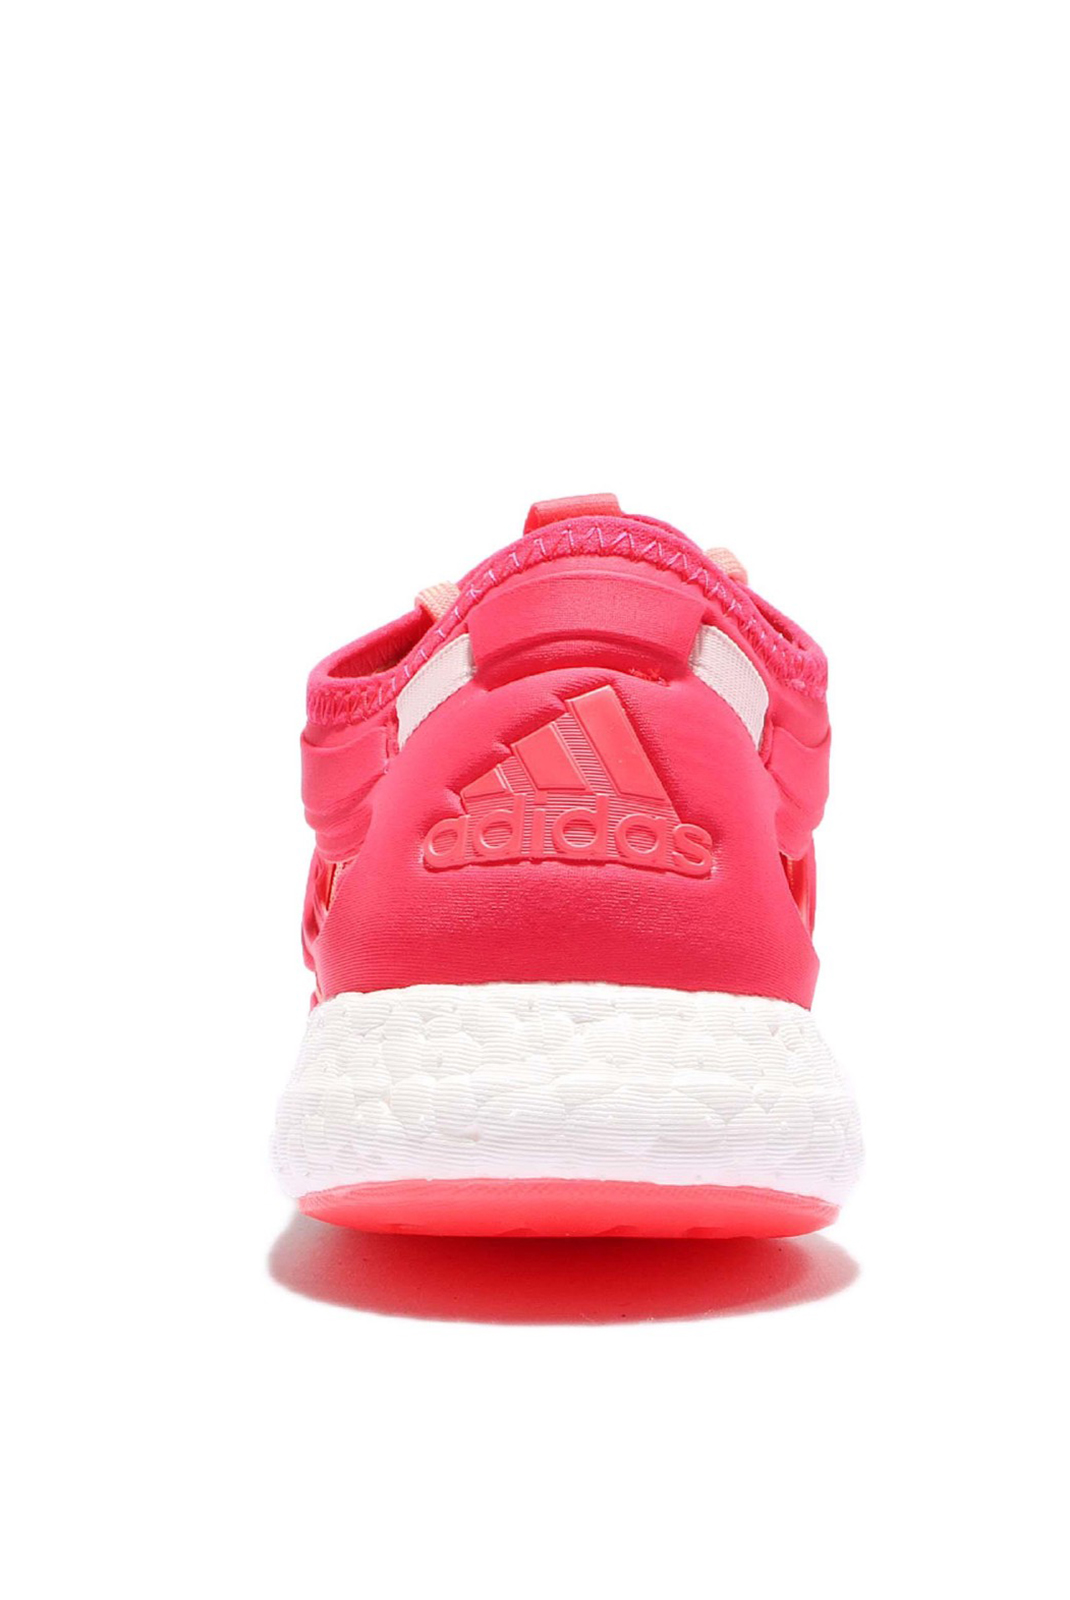 Baskets / Sneakers  Adidas S74472 cc rocket w PINK